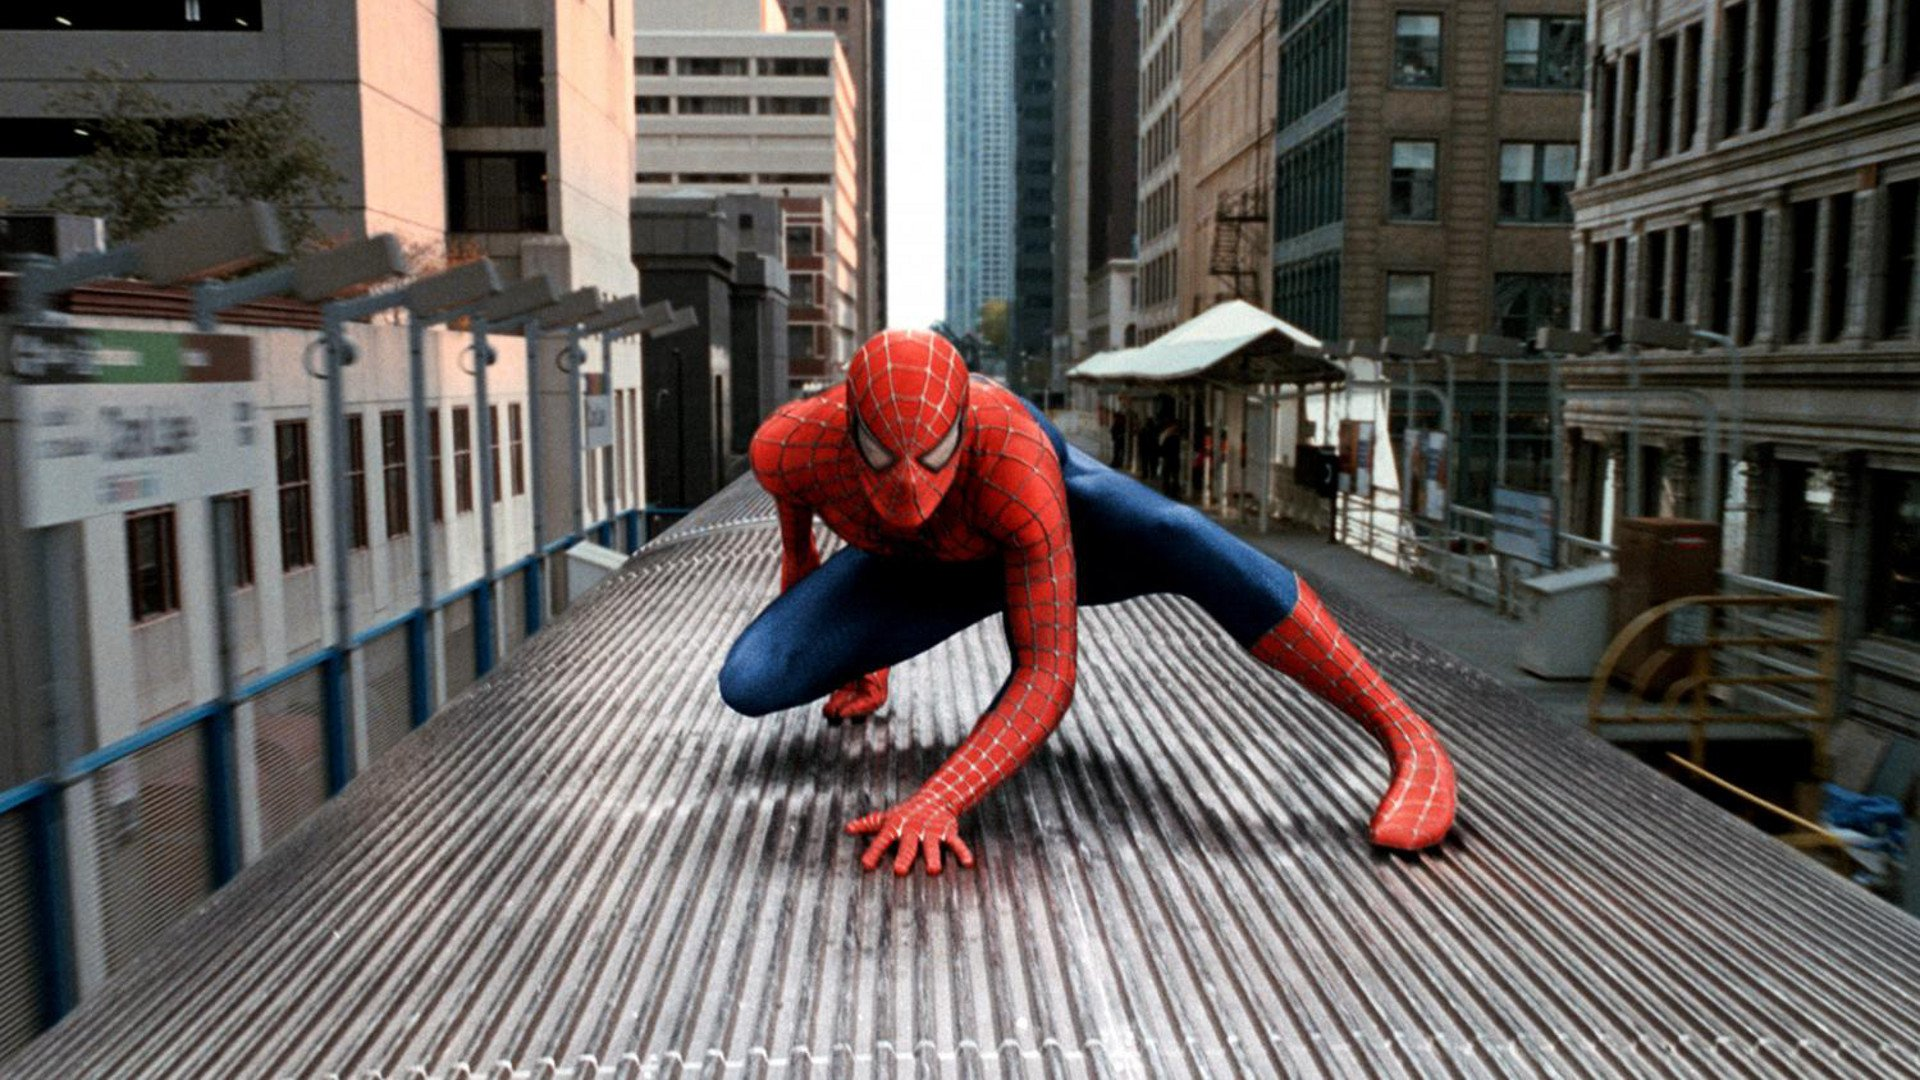 Tobey Maguire in action in a train in Spider-Man 2 (2004)